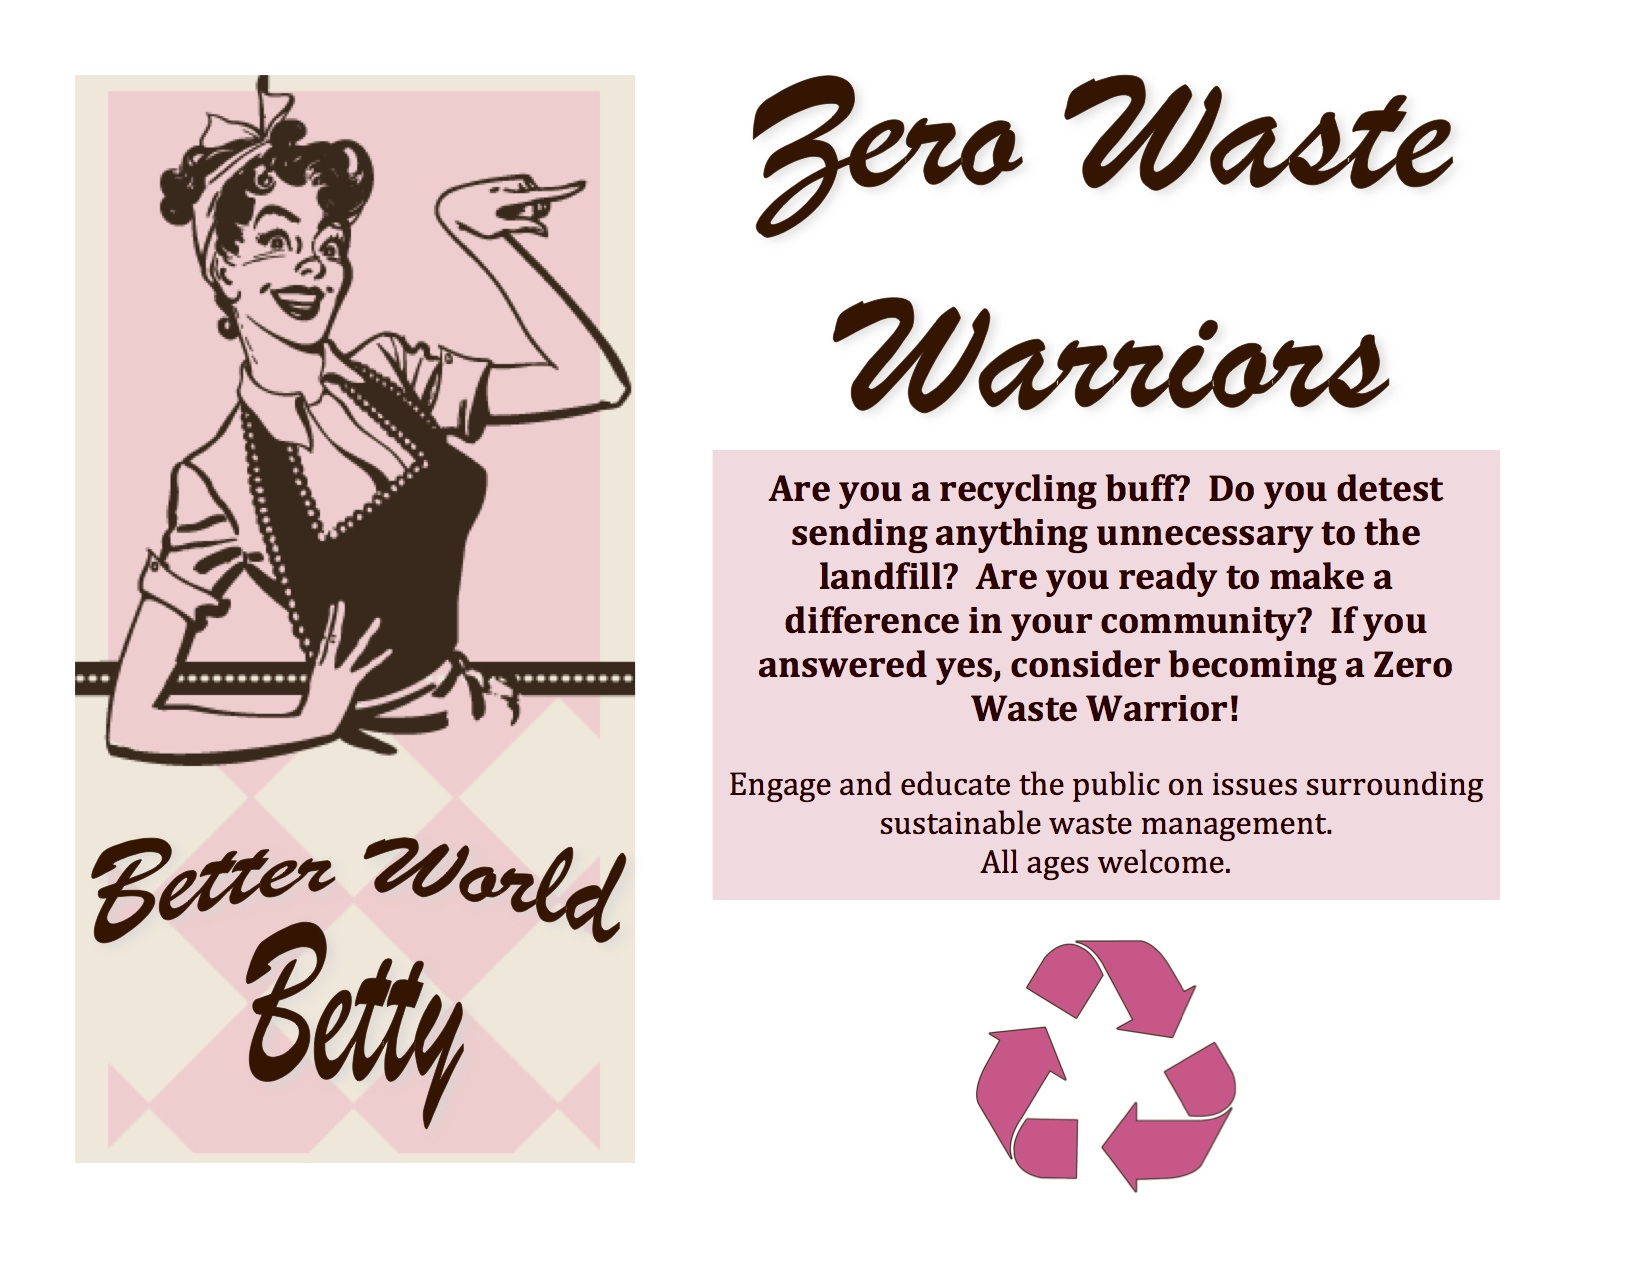 Become a Zero Waste Warrior!